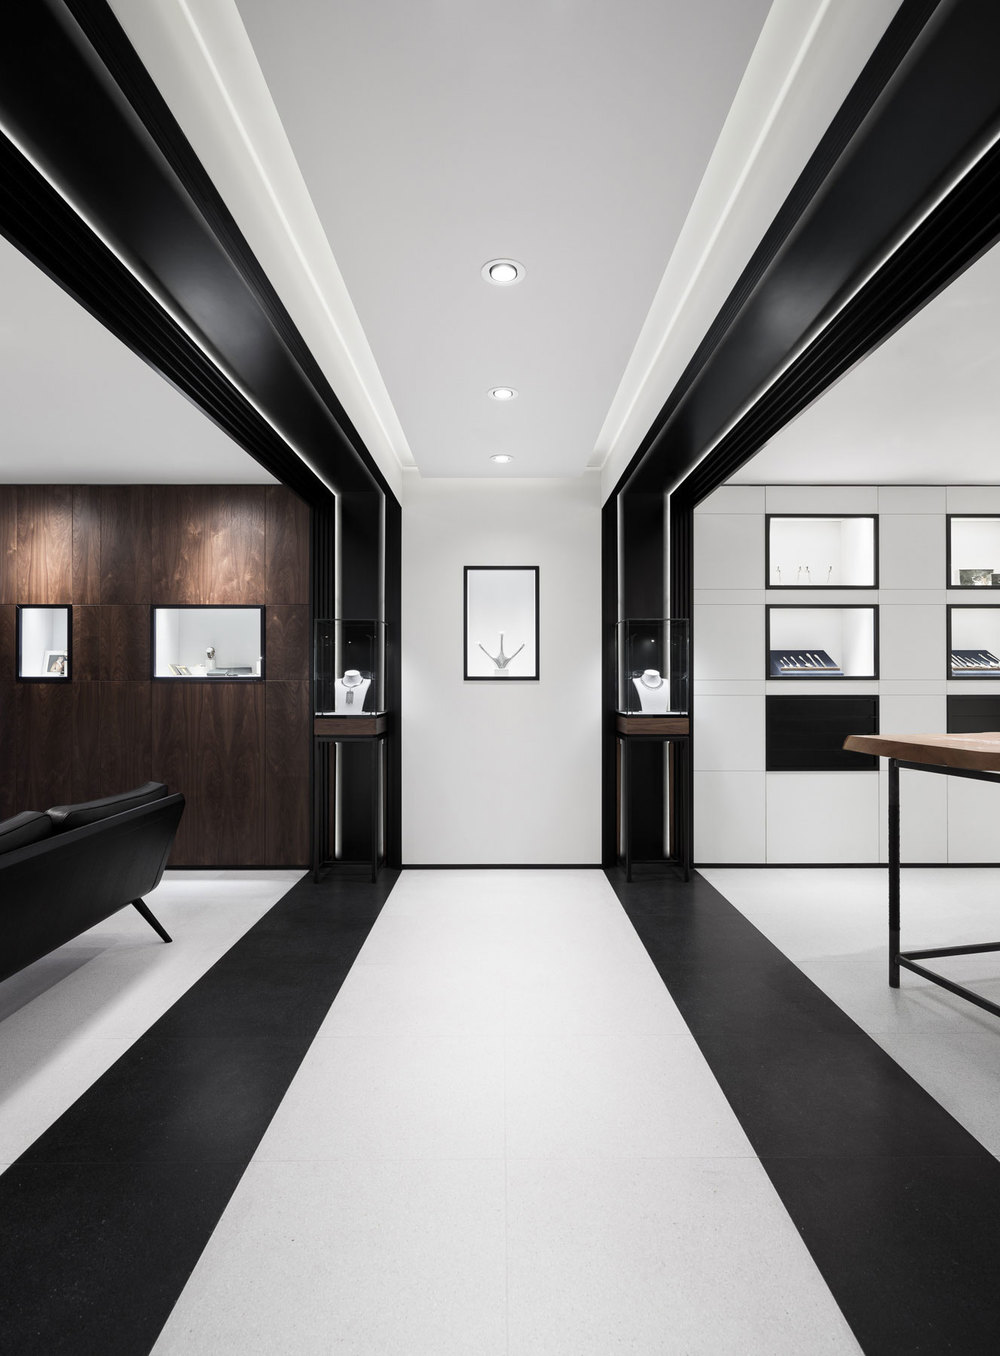 David thulstrup designs symmetrical space for georg jensen for E design interior design